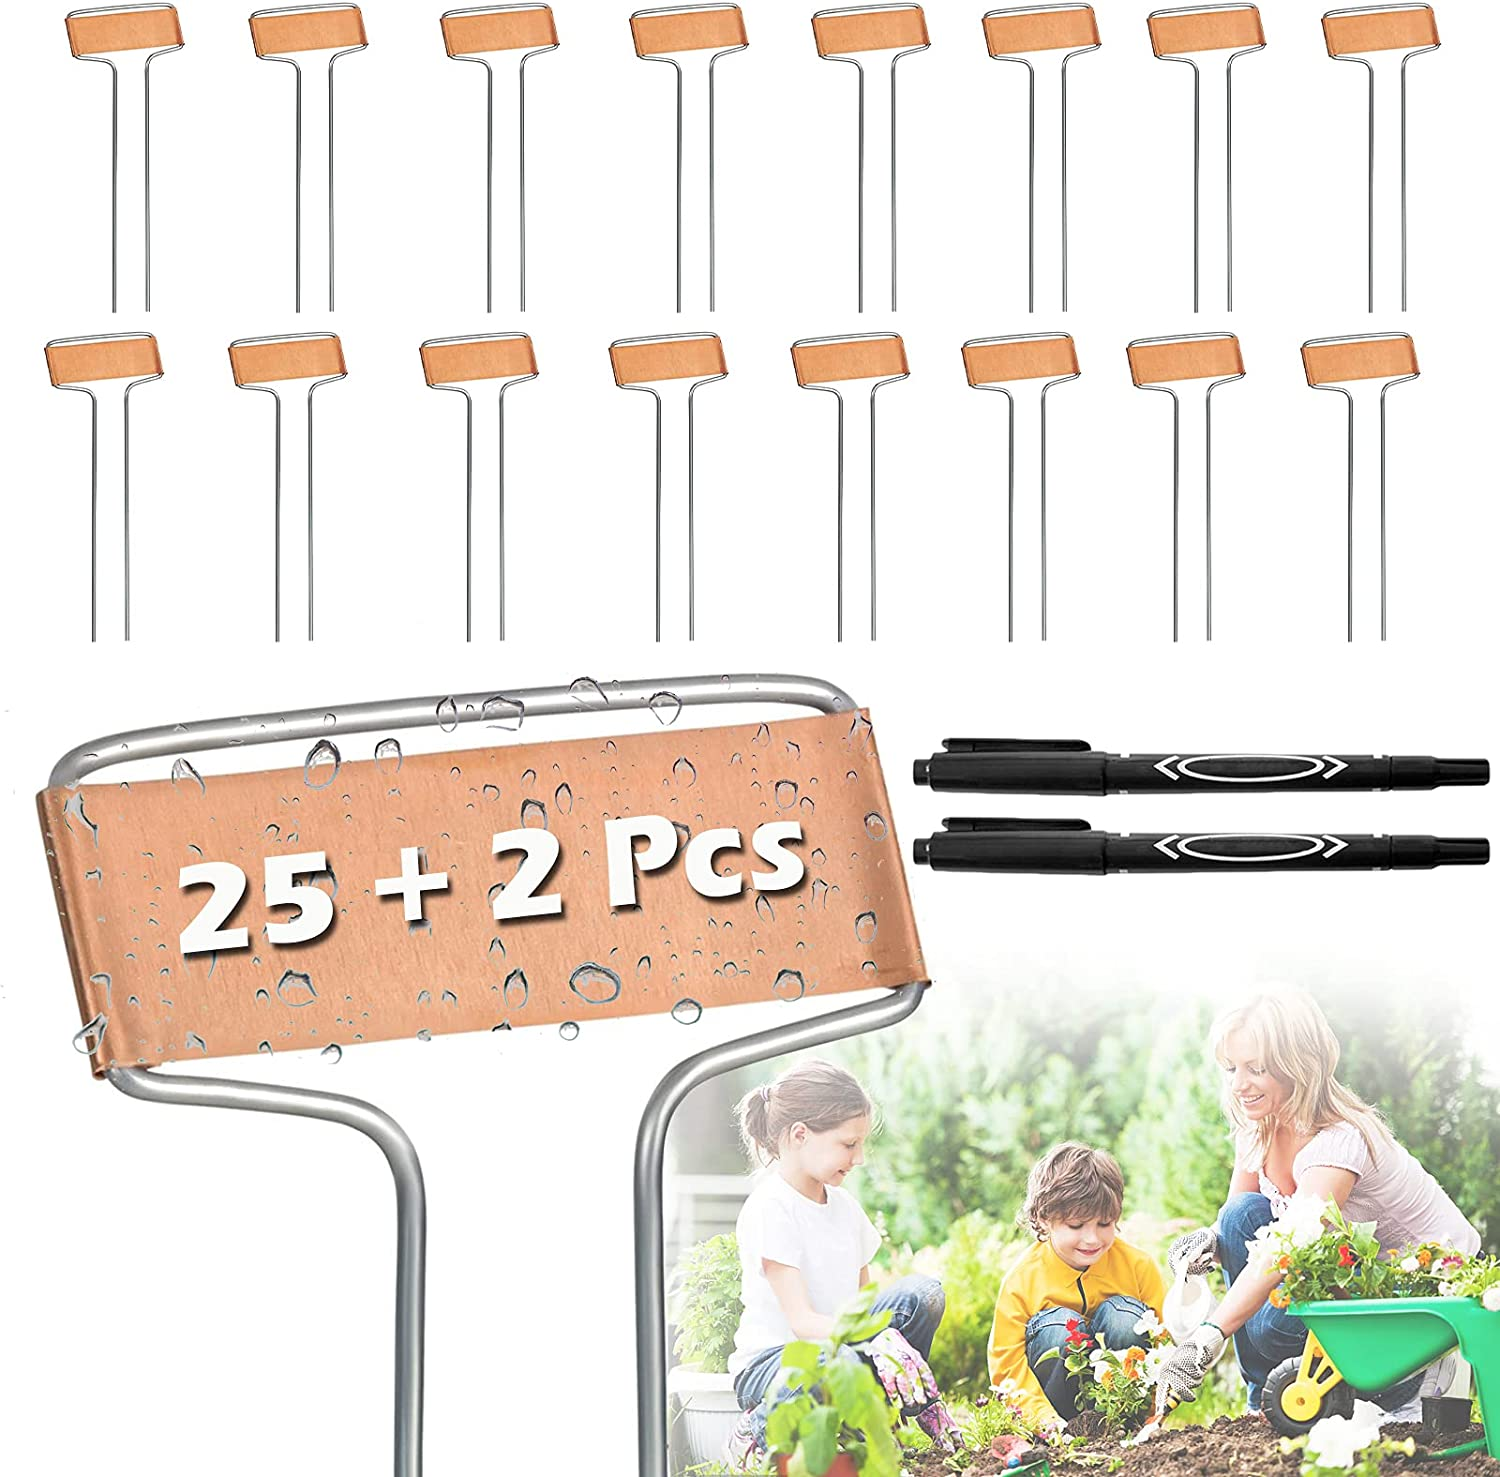 25 Pcs Plant Tags, Copper Plant Labels for Outdoor Garden, Plant Markers for Garden Waterproof with 2 Marker Pens, Metal Garden Plant Labels and Maker Pen for Vegetables Flowers Potted Plants